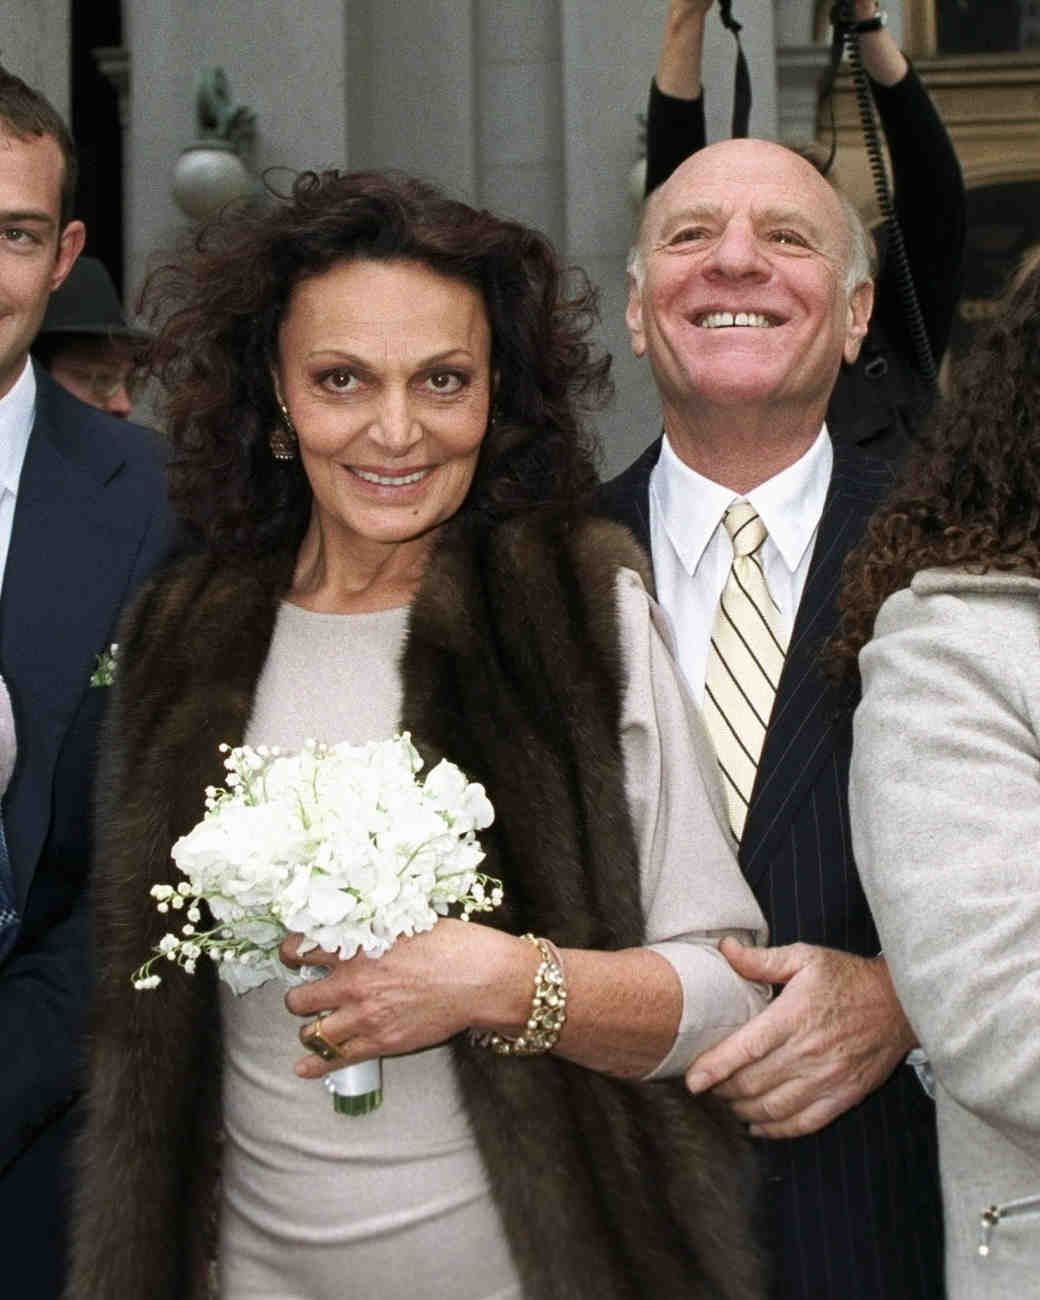 diane-von-furstenberg-barry-diller-wedding-0616.jpg